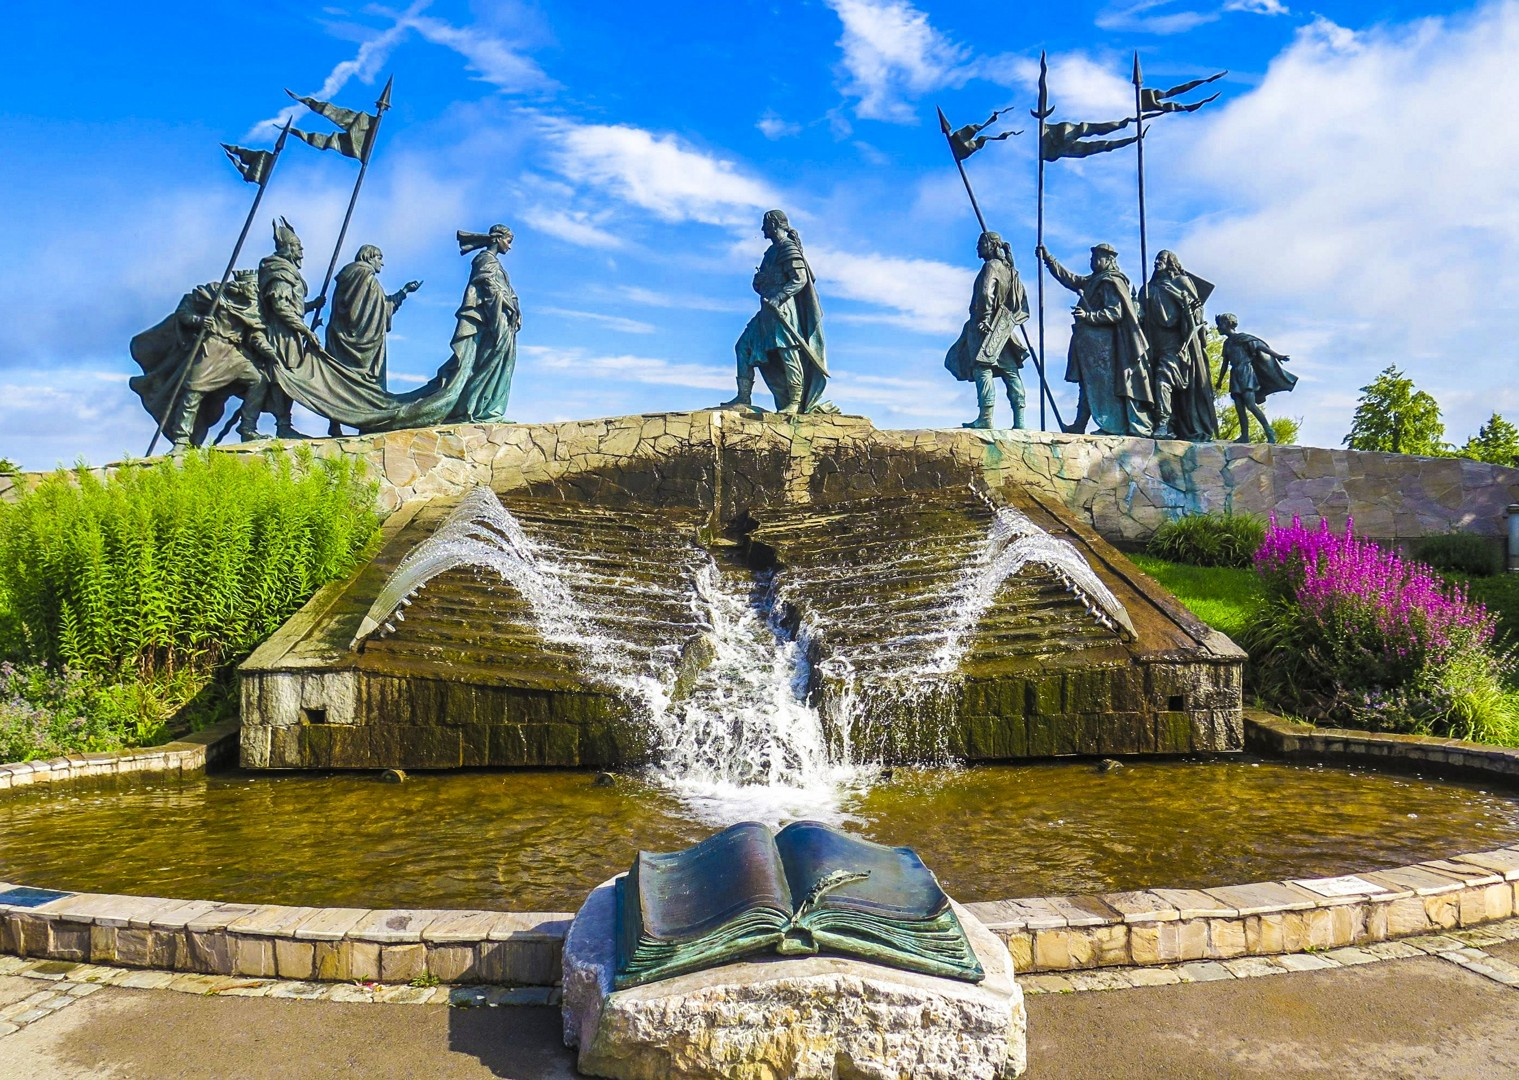 culture-nibelungen-fountain-austria-danube-cycle-holiday.jpg - Germany and Austria - The Danube Cyclepath (10 Days) - Self-Guided Leisure Cycling Holiday - Leisure Cycling